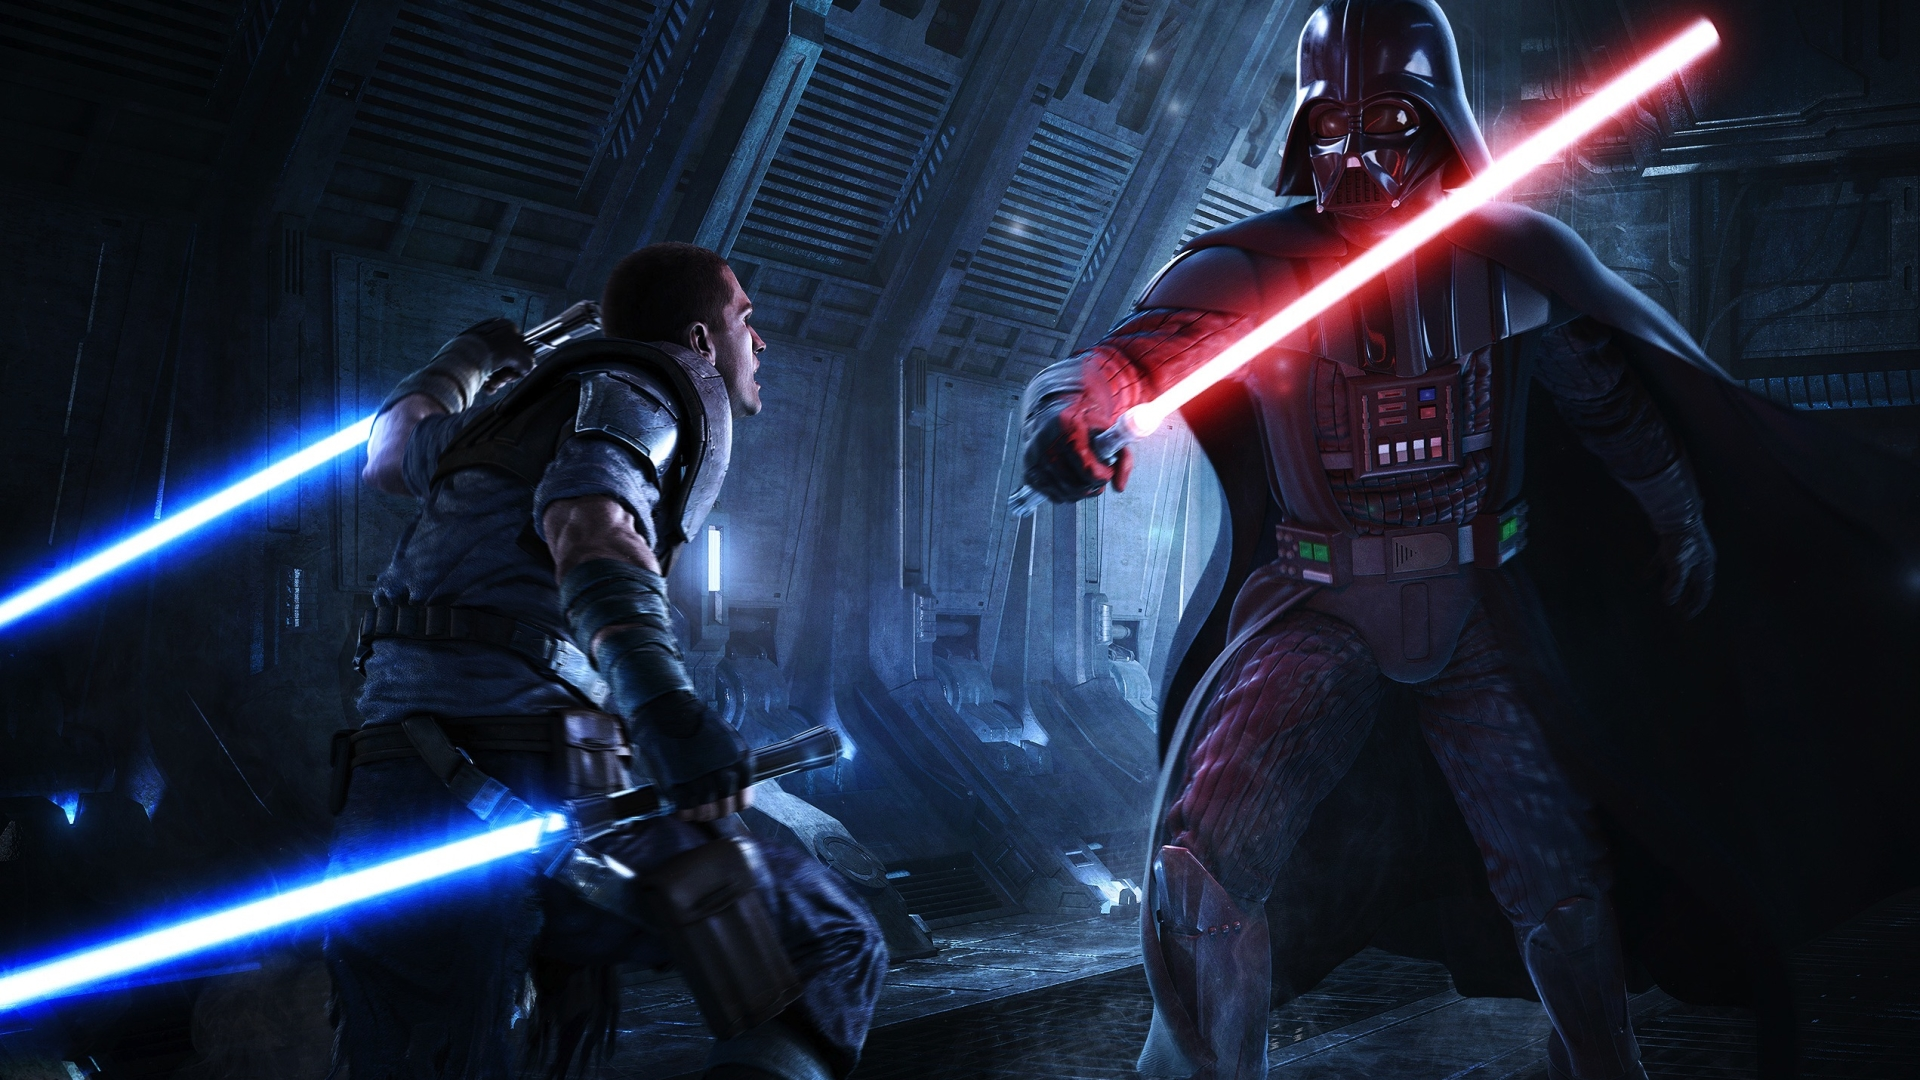 Star Wars Jedi Fallen Order Darth Vader 1920x1080 Wallpaper Teahub Io